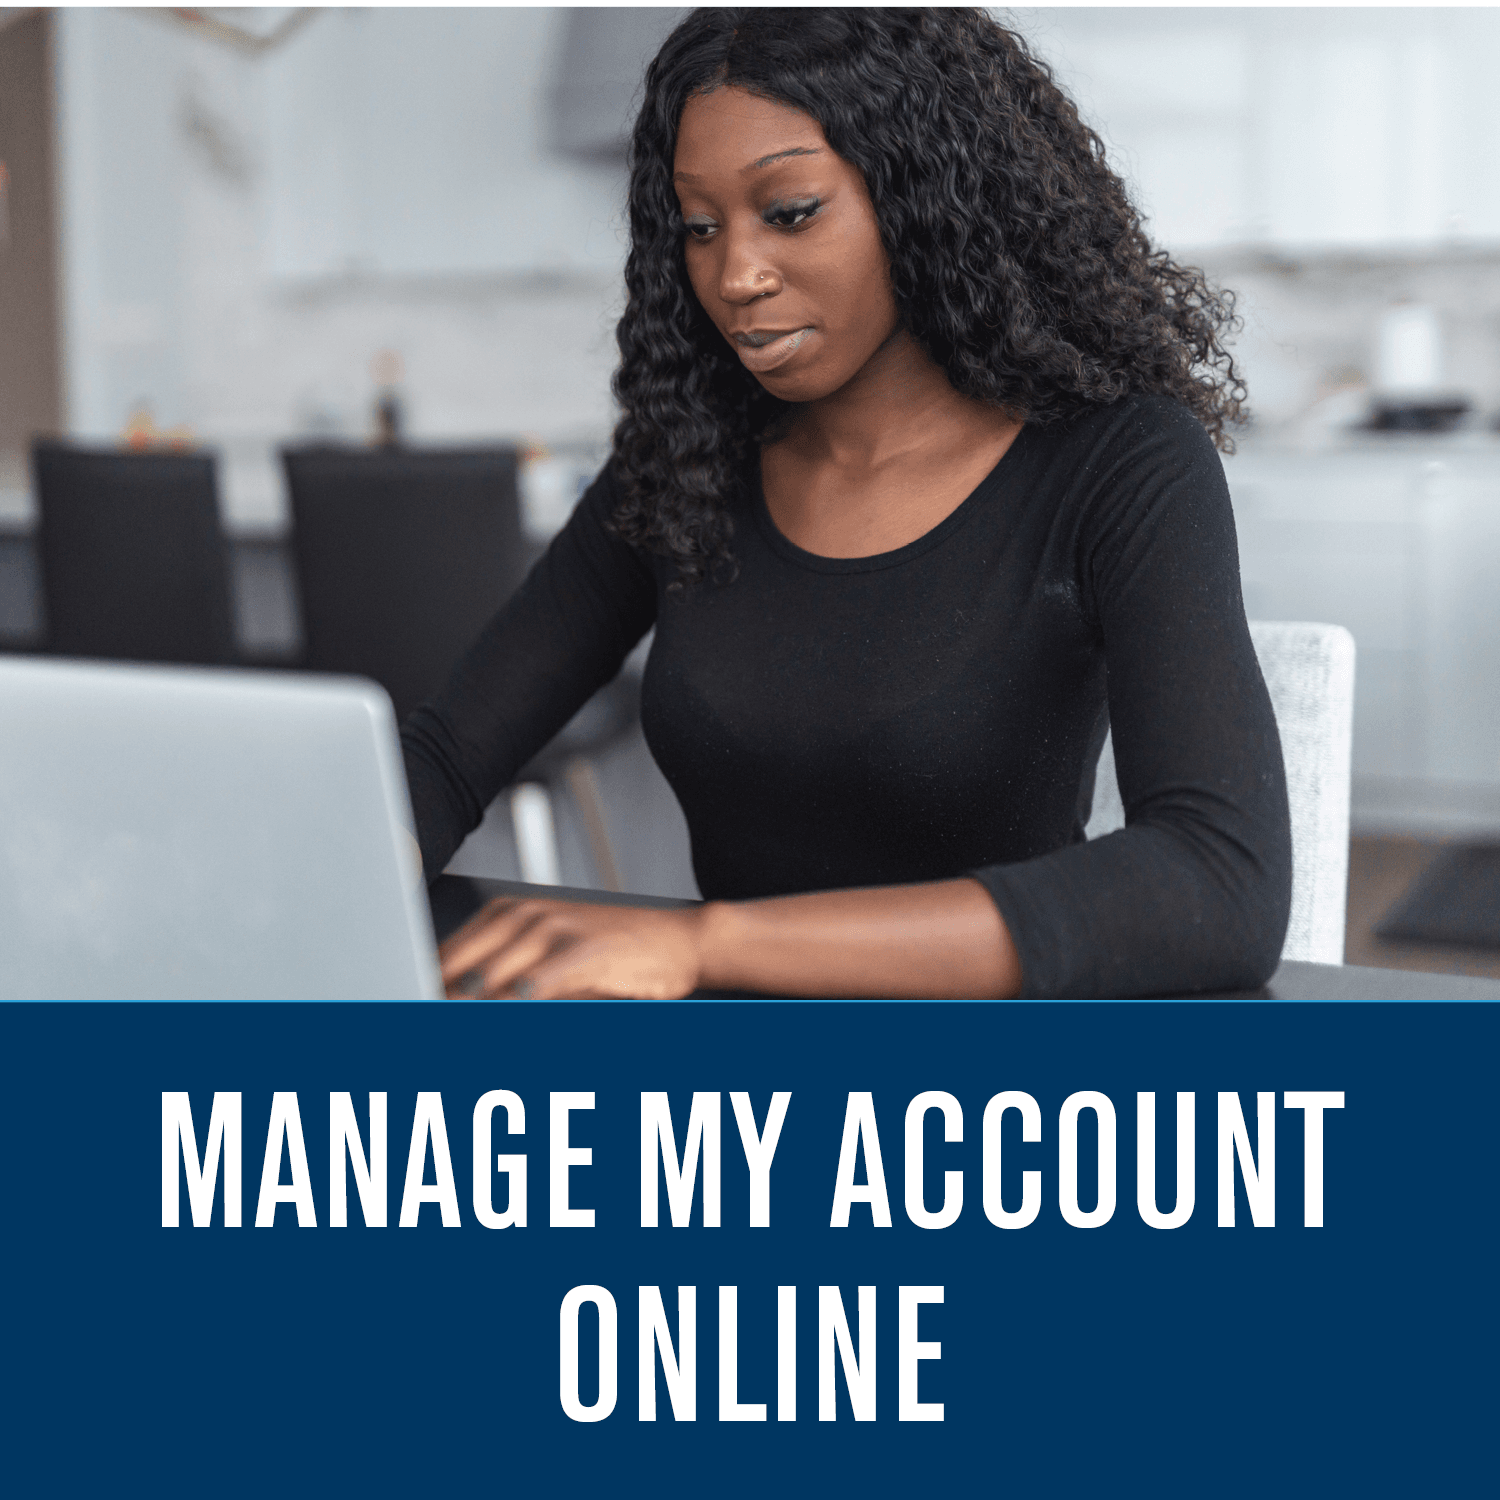 Manage My Account Online